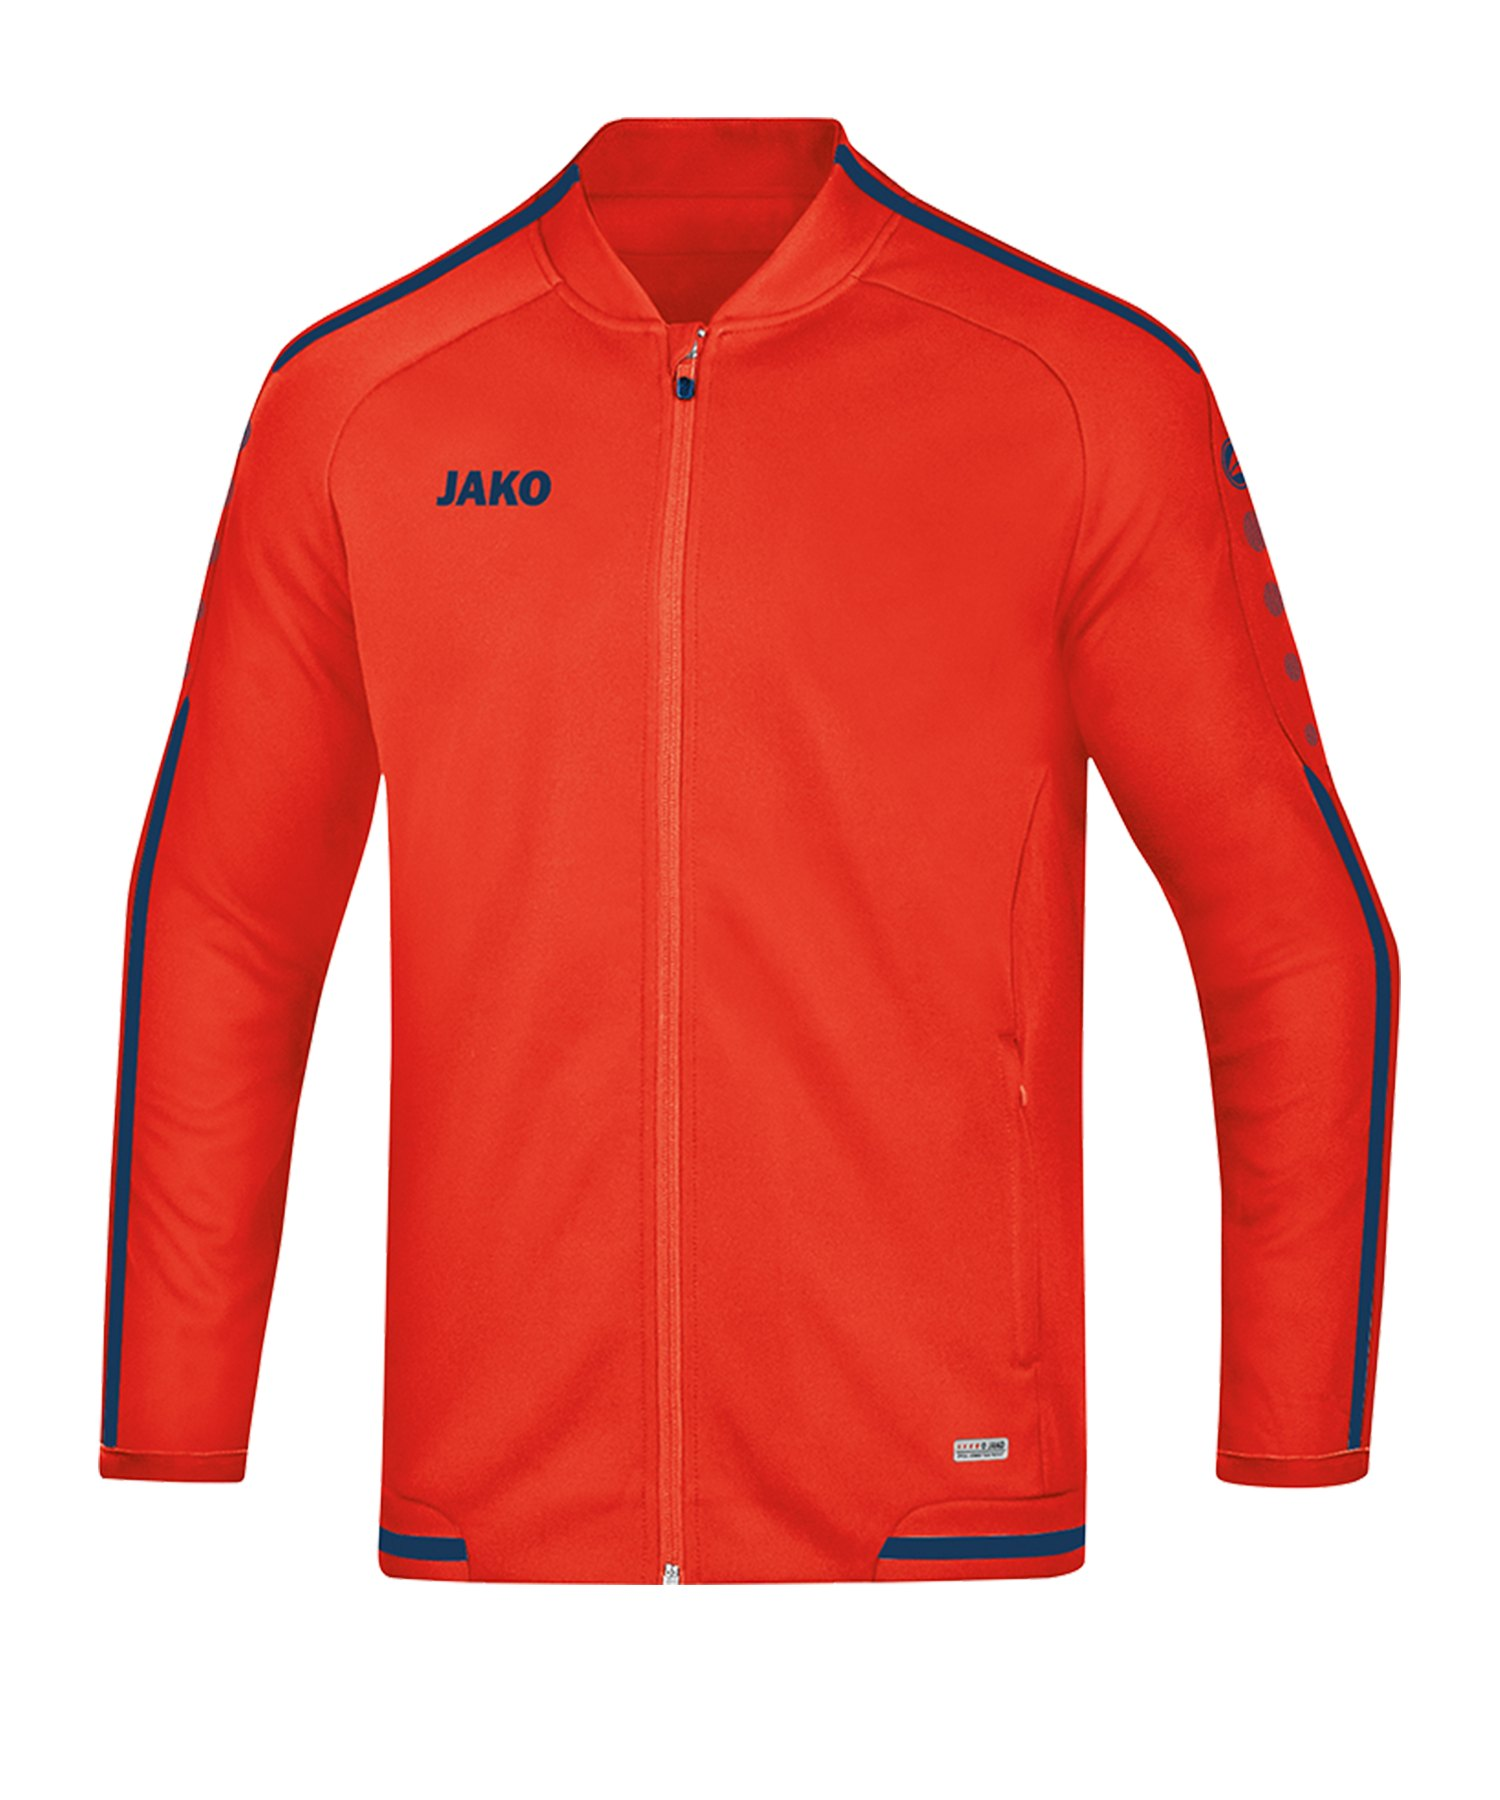 Jako Striker 2.0 Freizeitjacke Damen Orange F18 - Orange